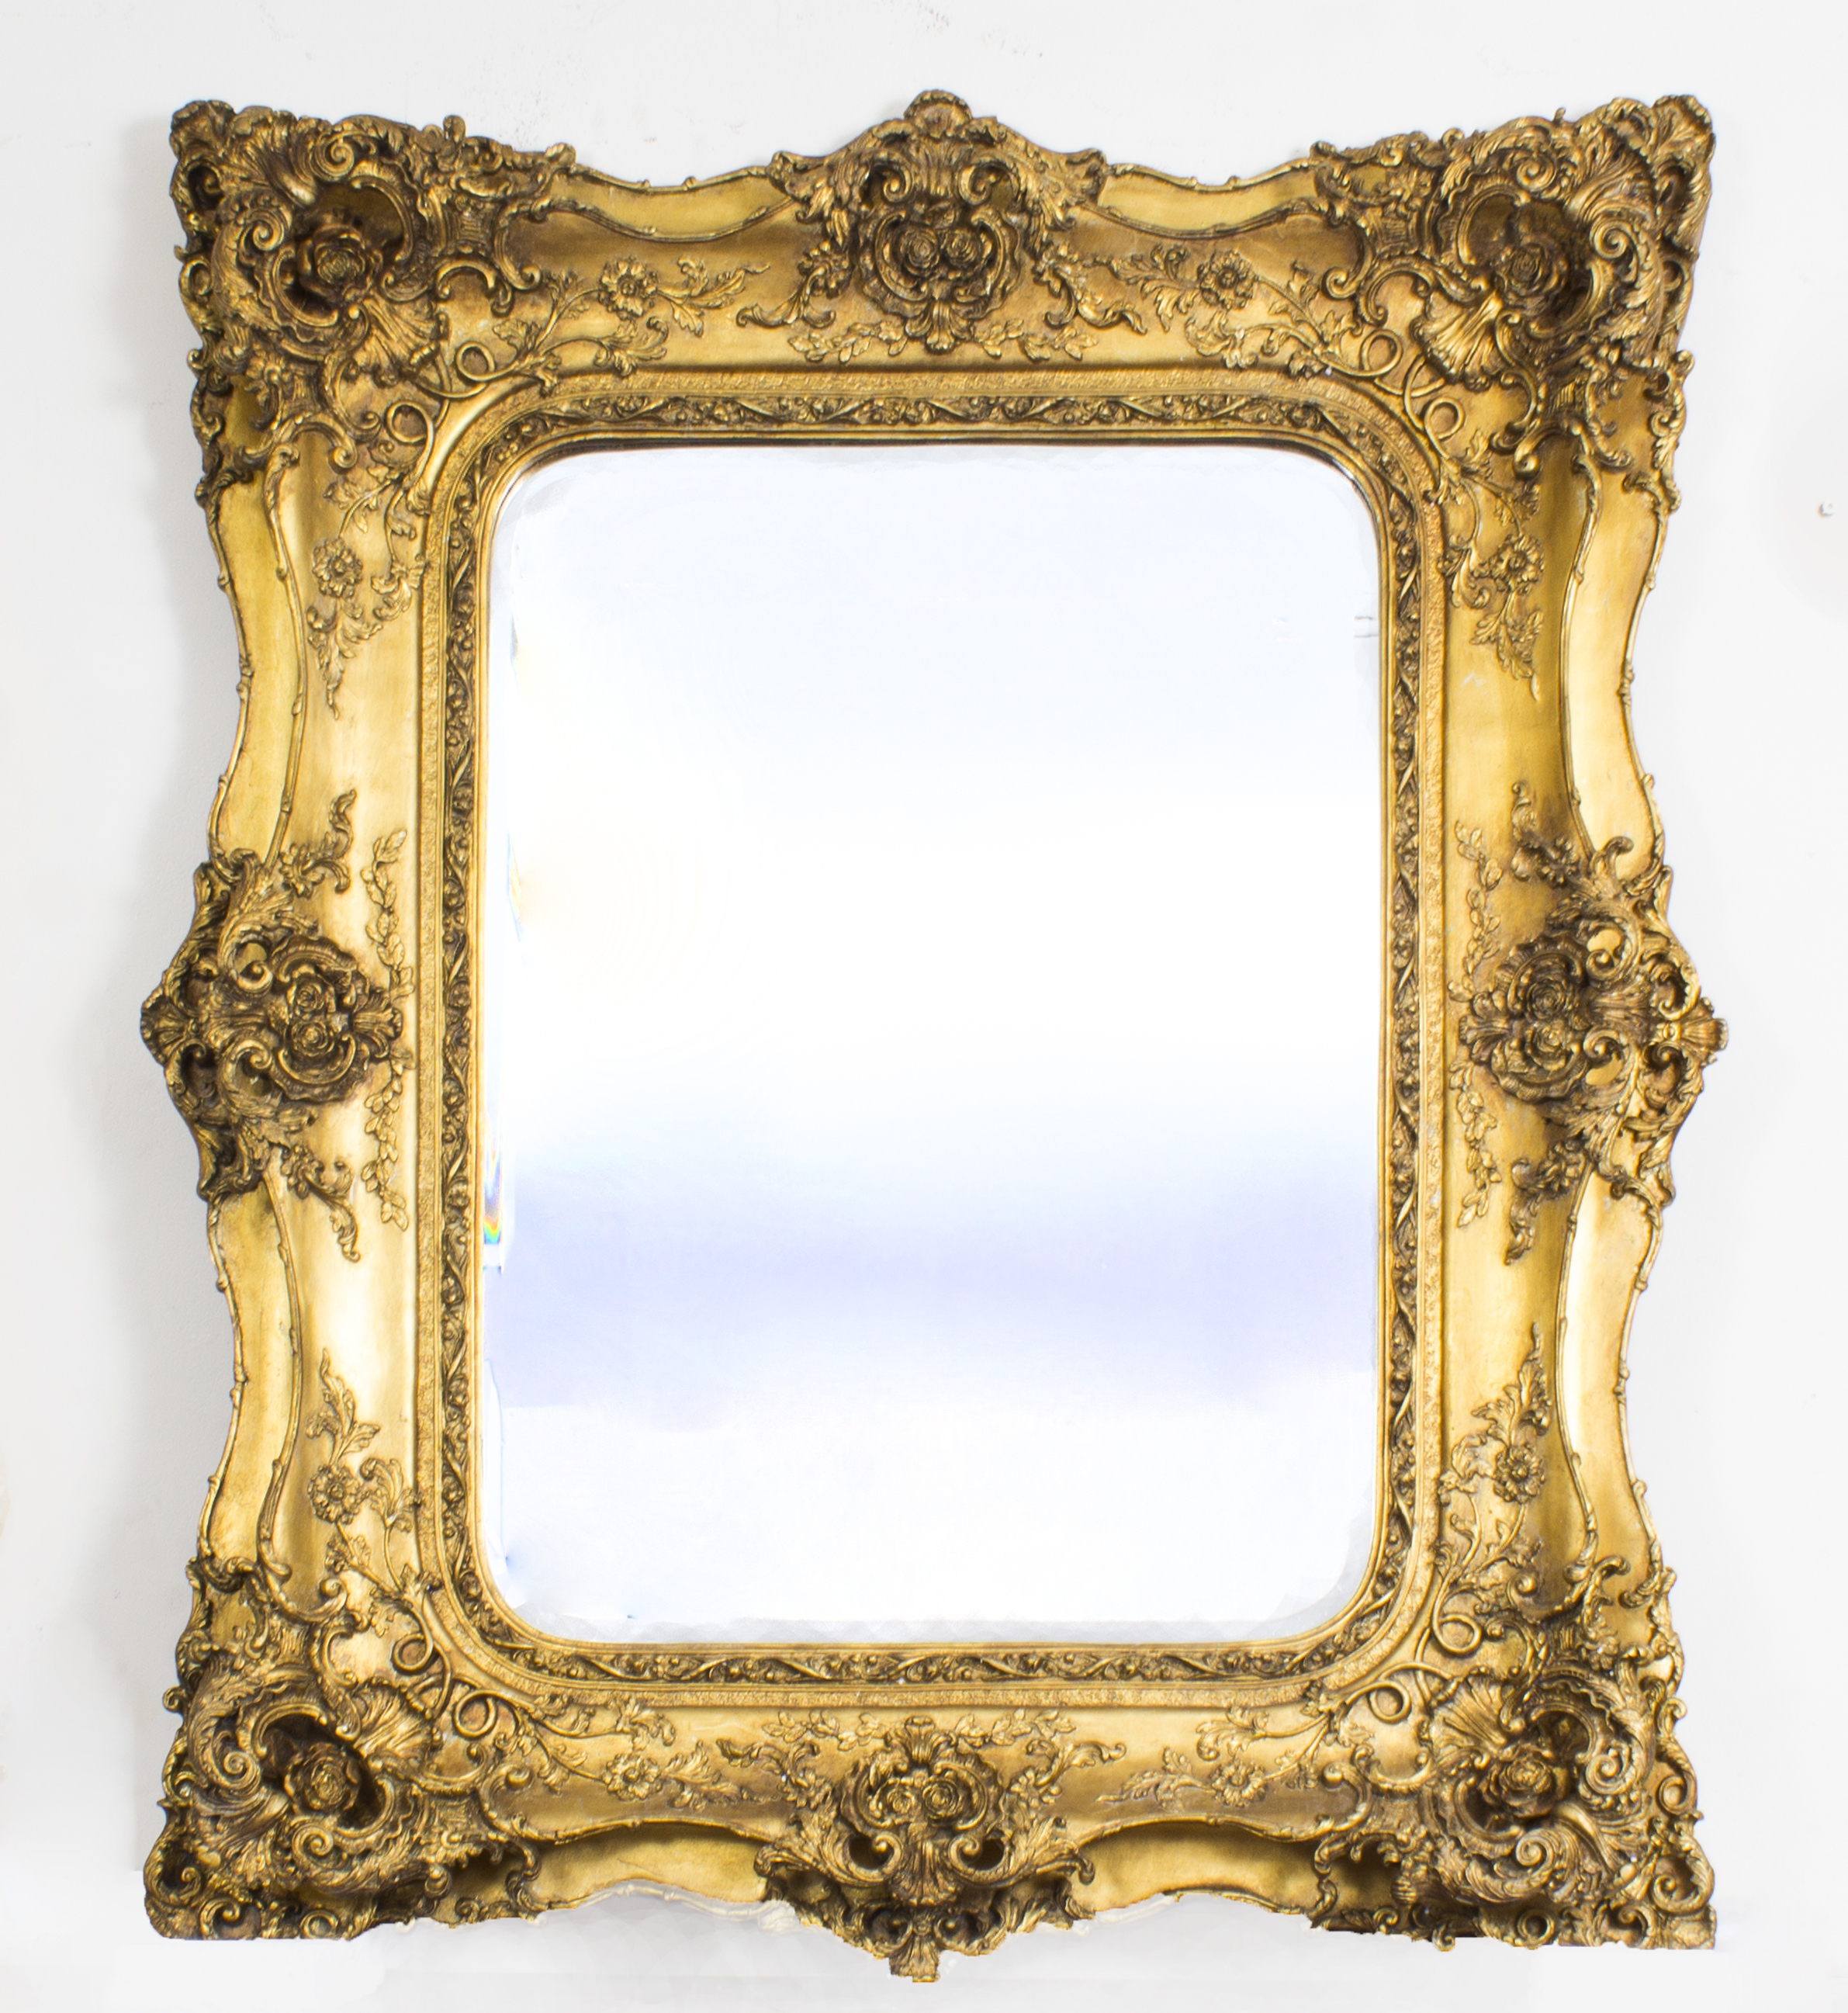 Stunning Large Ornate Italian Gilded Mirror 122 X 101 Cm Throughout Ornate Large Mirrors (Image 12 of 15)